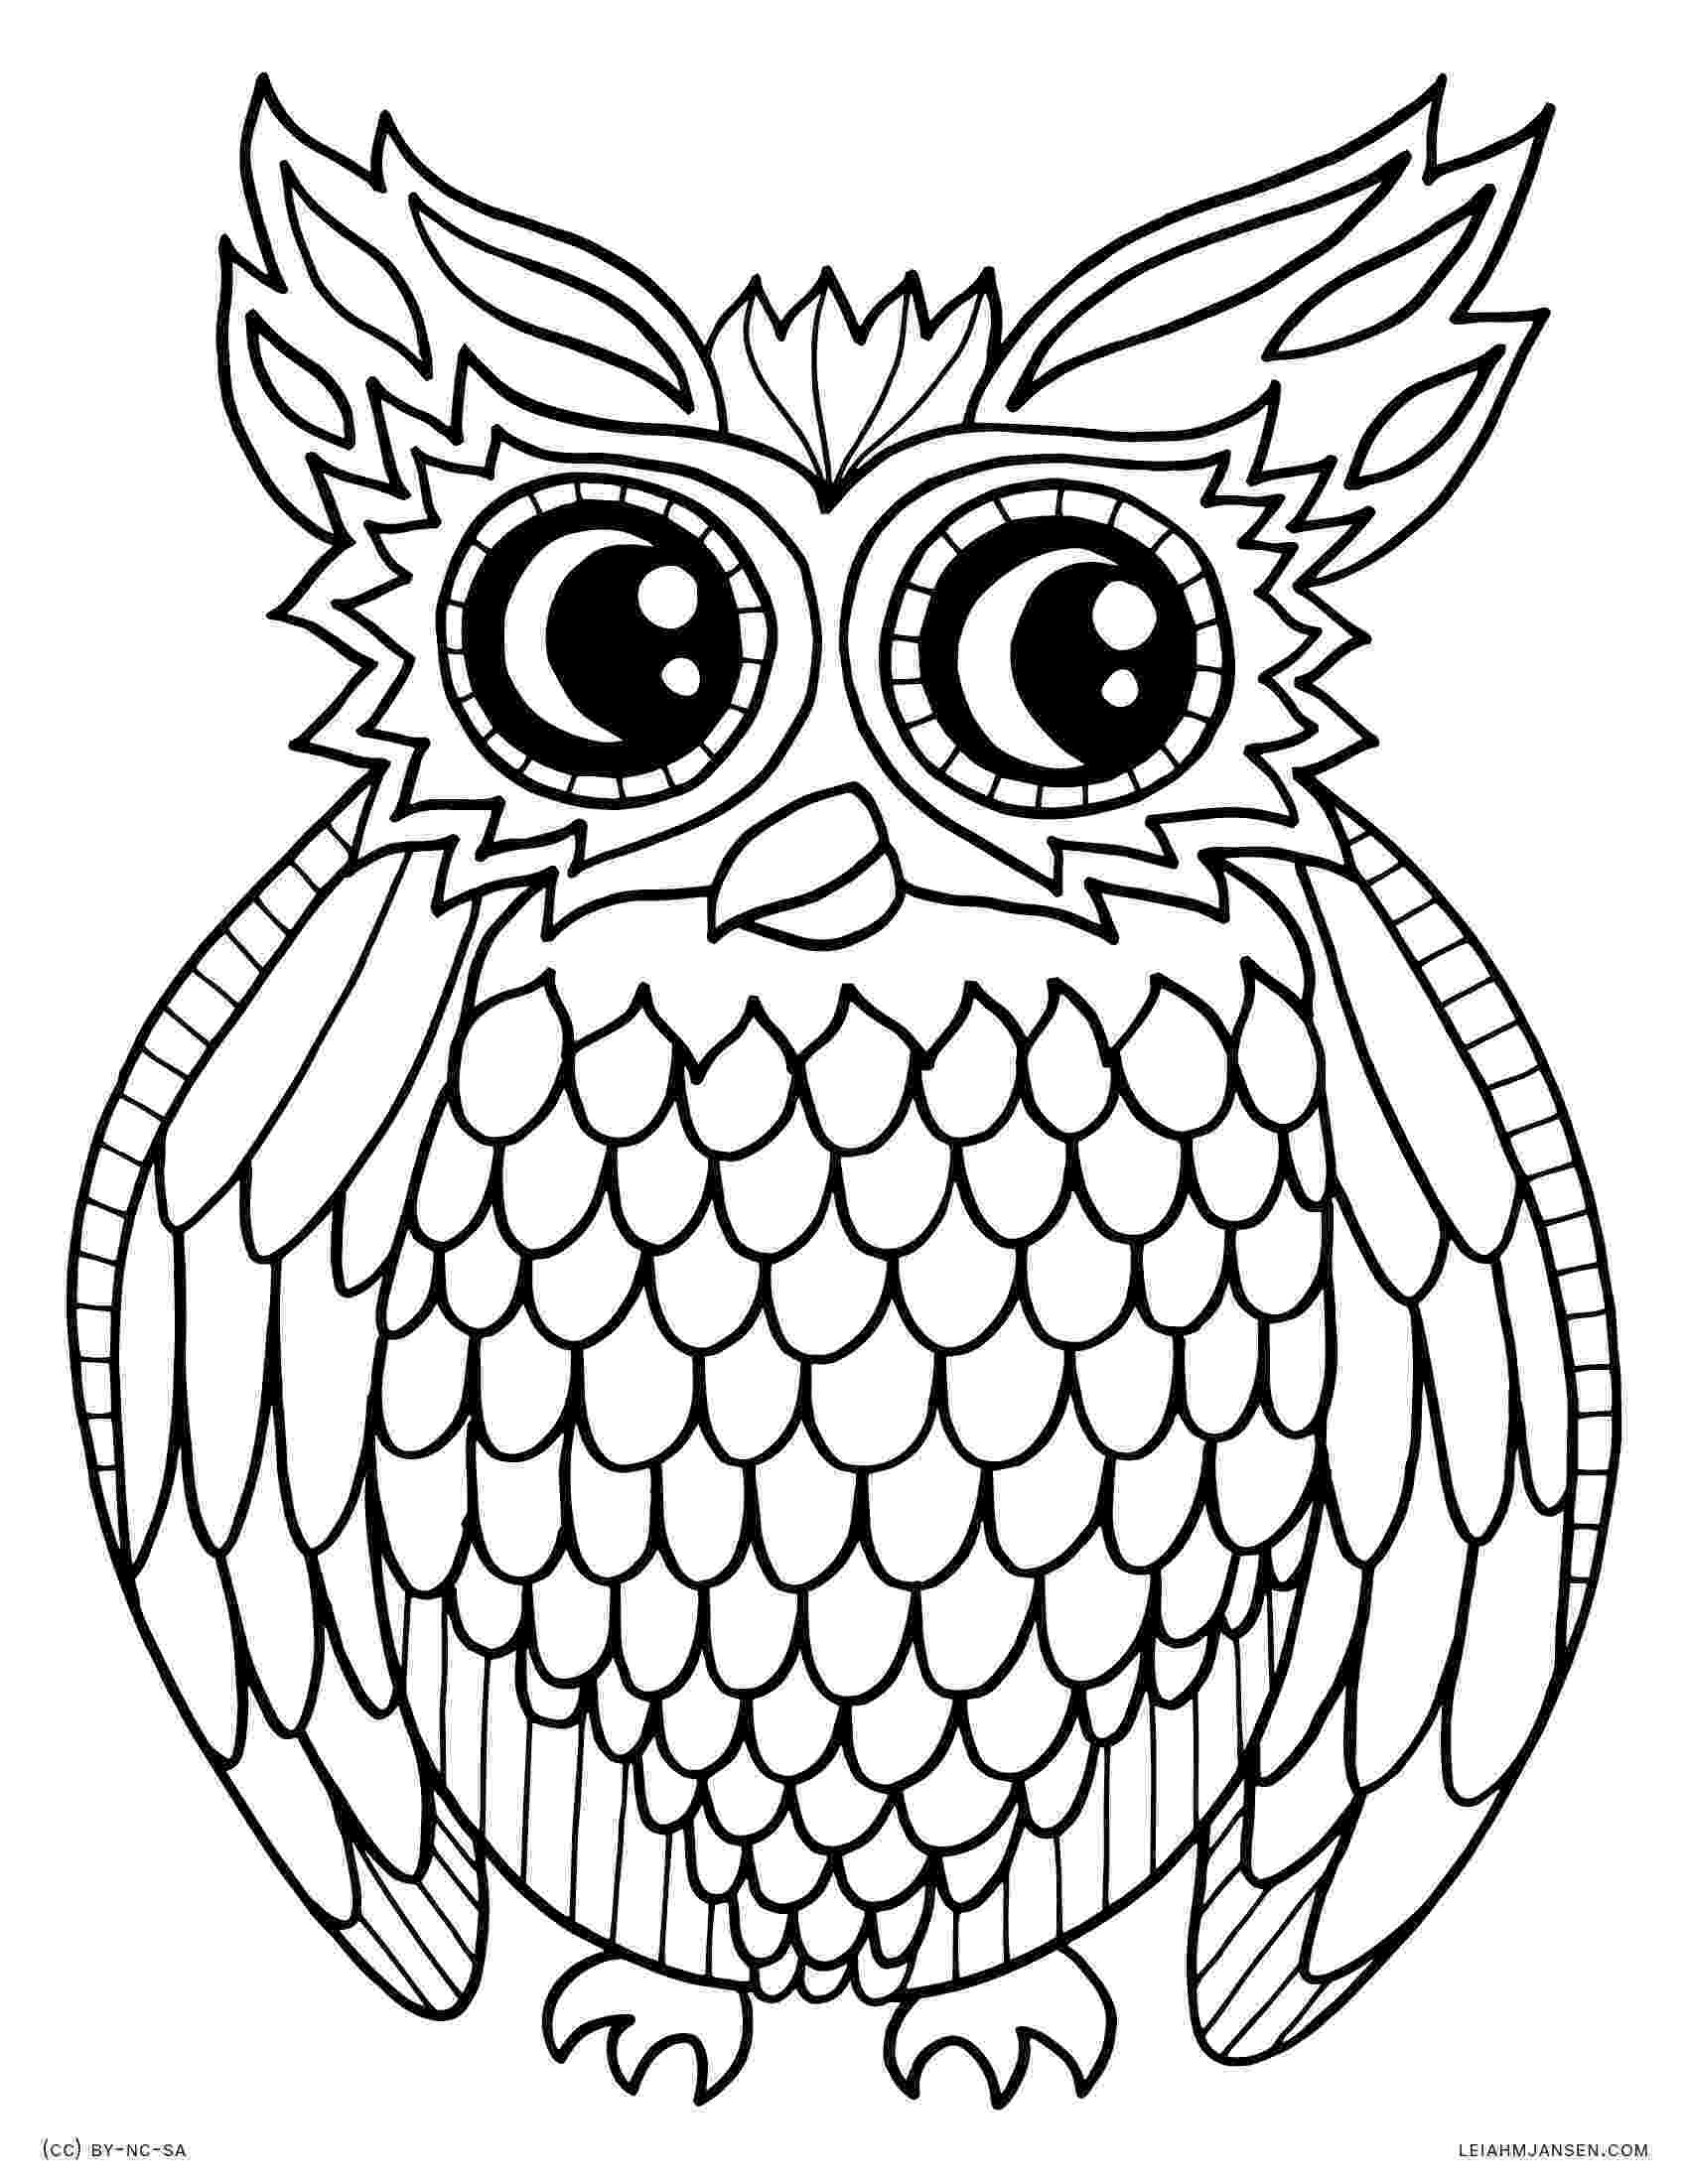 owl coloring sheet 1000 images about owl on pinterest coloring baby owls sheet owl coloring